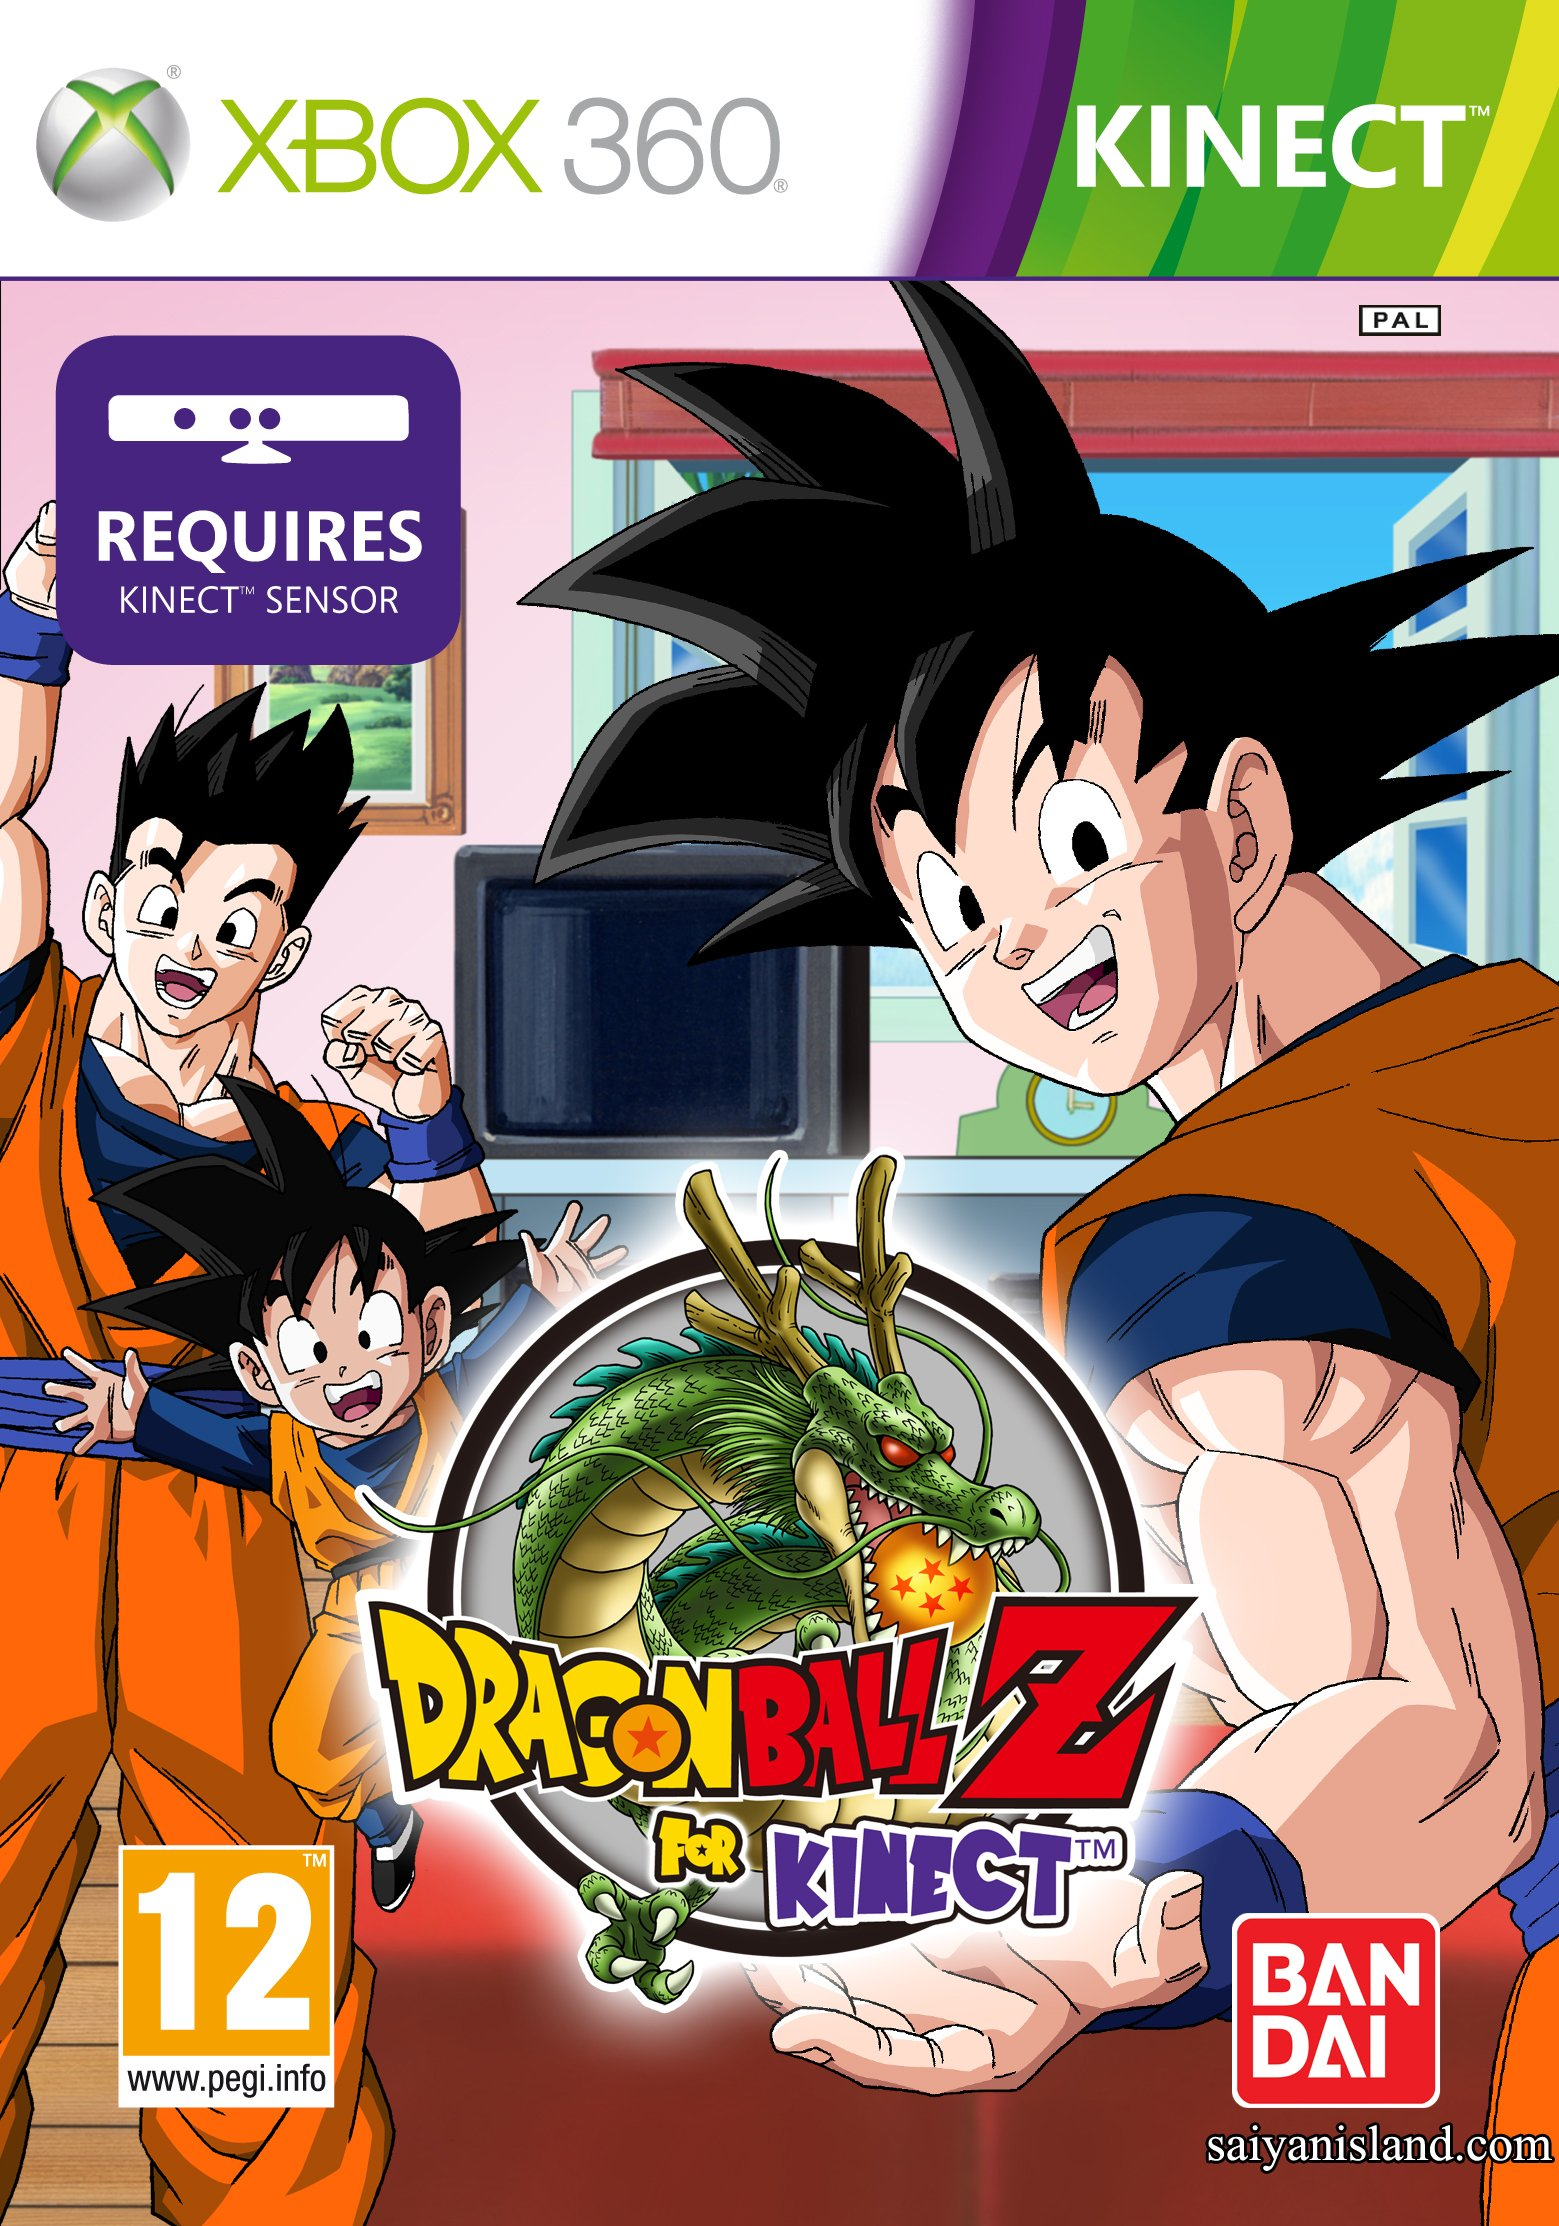 Dragon Ball Z For Kinect (Xbox 360) Review 2